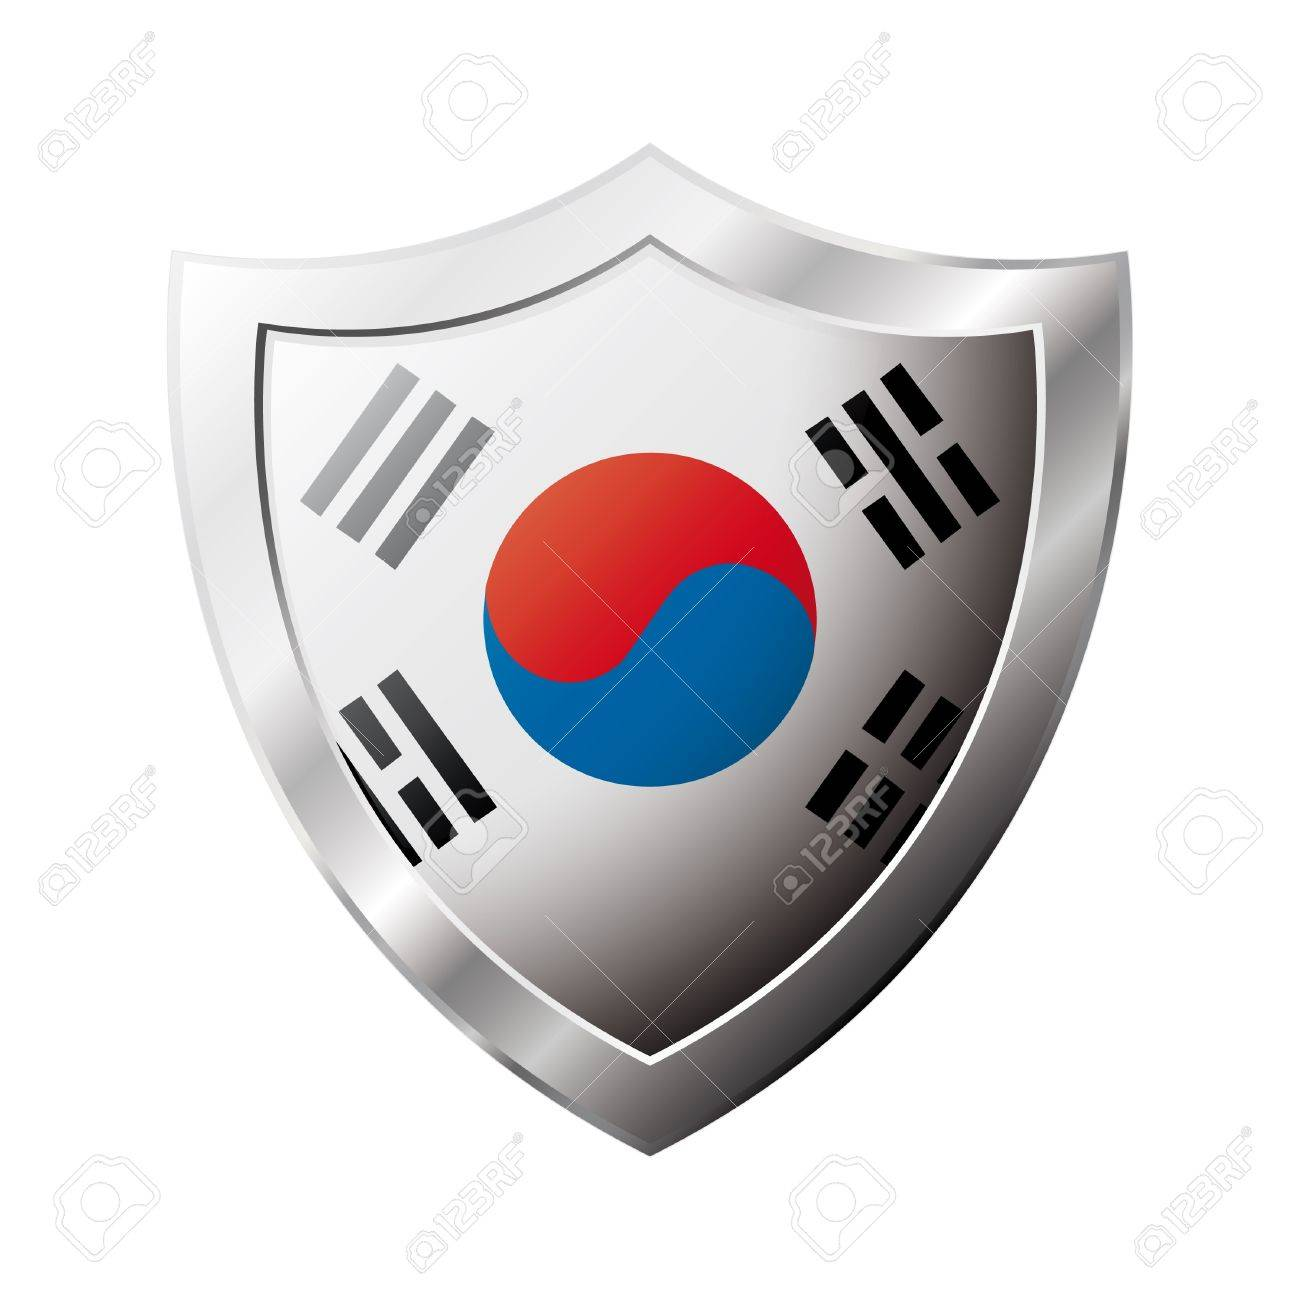 South Korea flag on metal shiny shield  illustration. Collection of flags on shield against white background. Abstract isolated object. Stock Illustration - 6945774